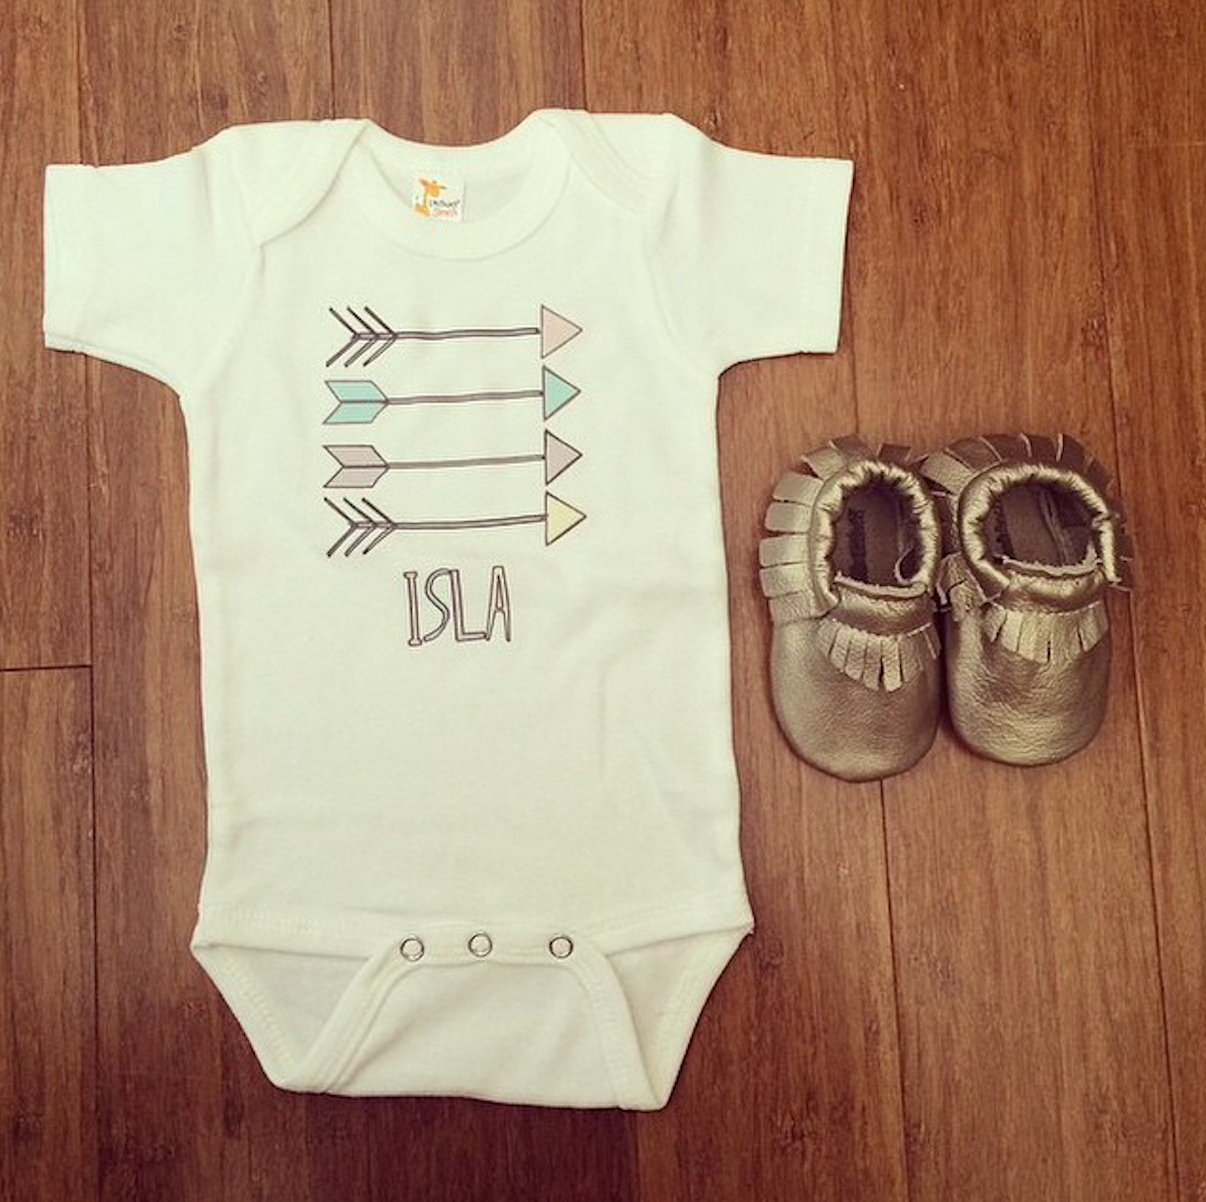 A customer photo of Isla's Aztec Arrows Baby Name Onesie (@caitlinlee94)